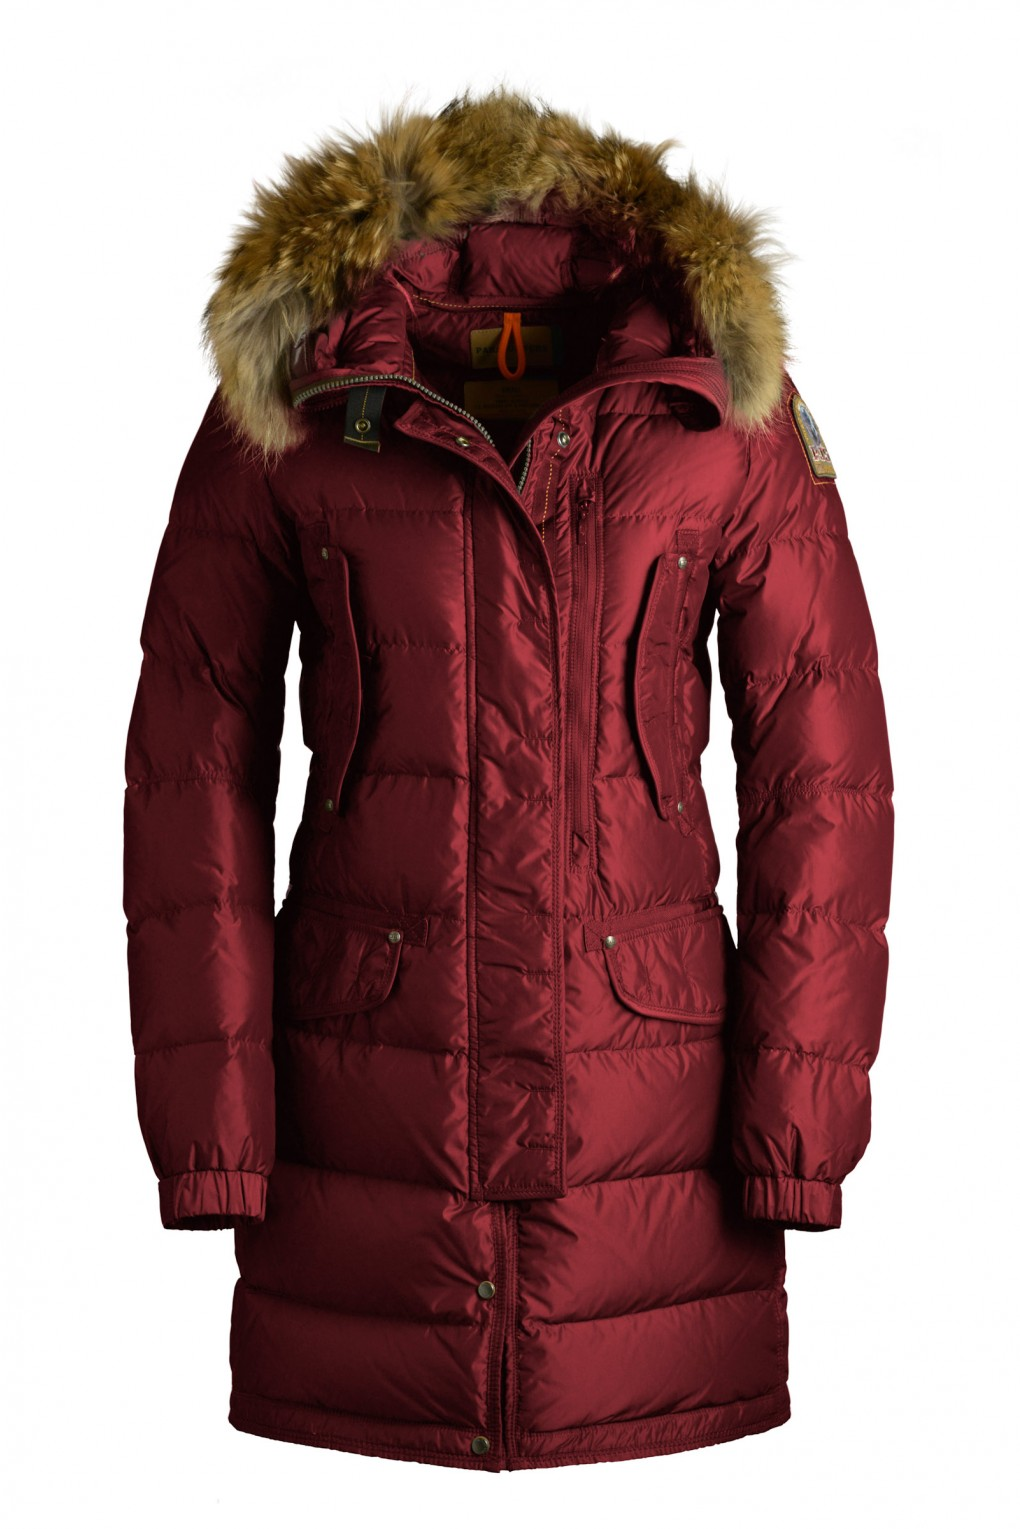 parajumpers HARRASEEKET woman outerwear Red